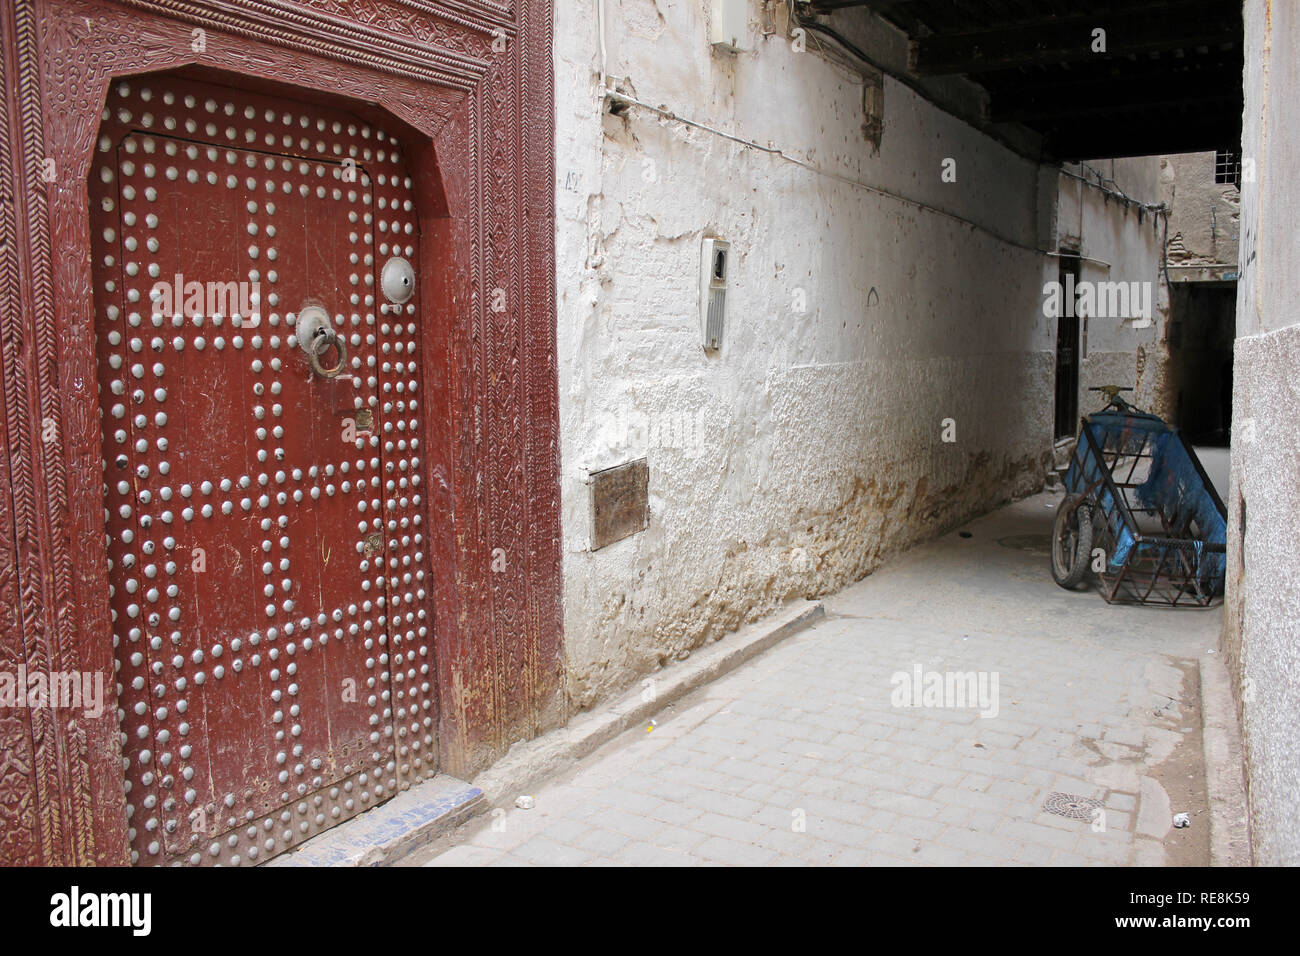 Moroccan Wooden Door And Alley in Bab Mellah: The Jewish Quarter (Fes) - Stock Image